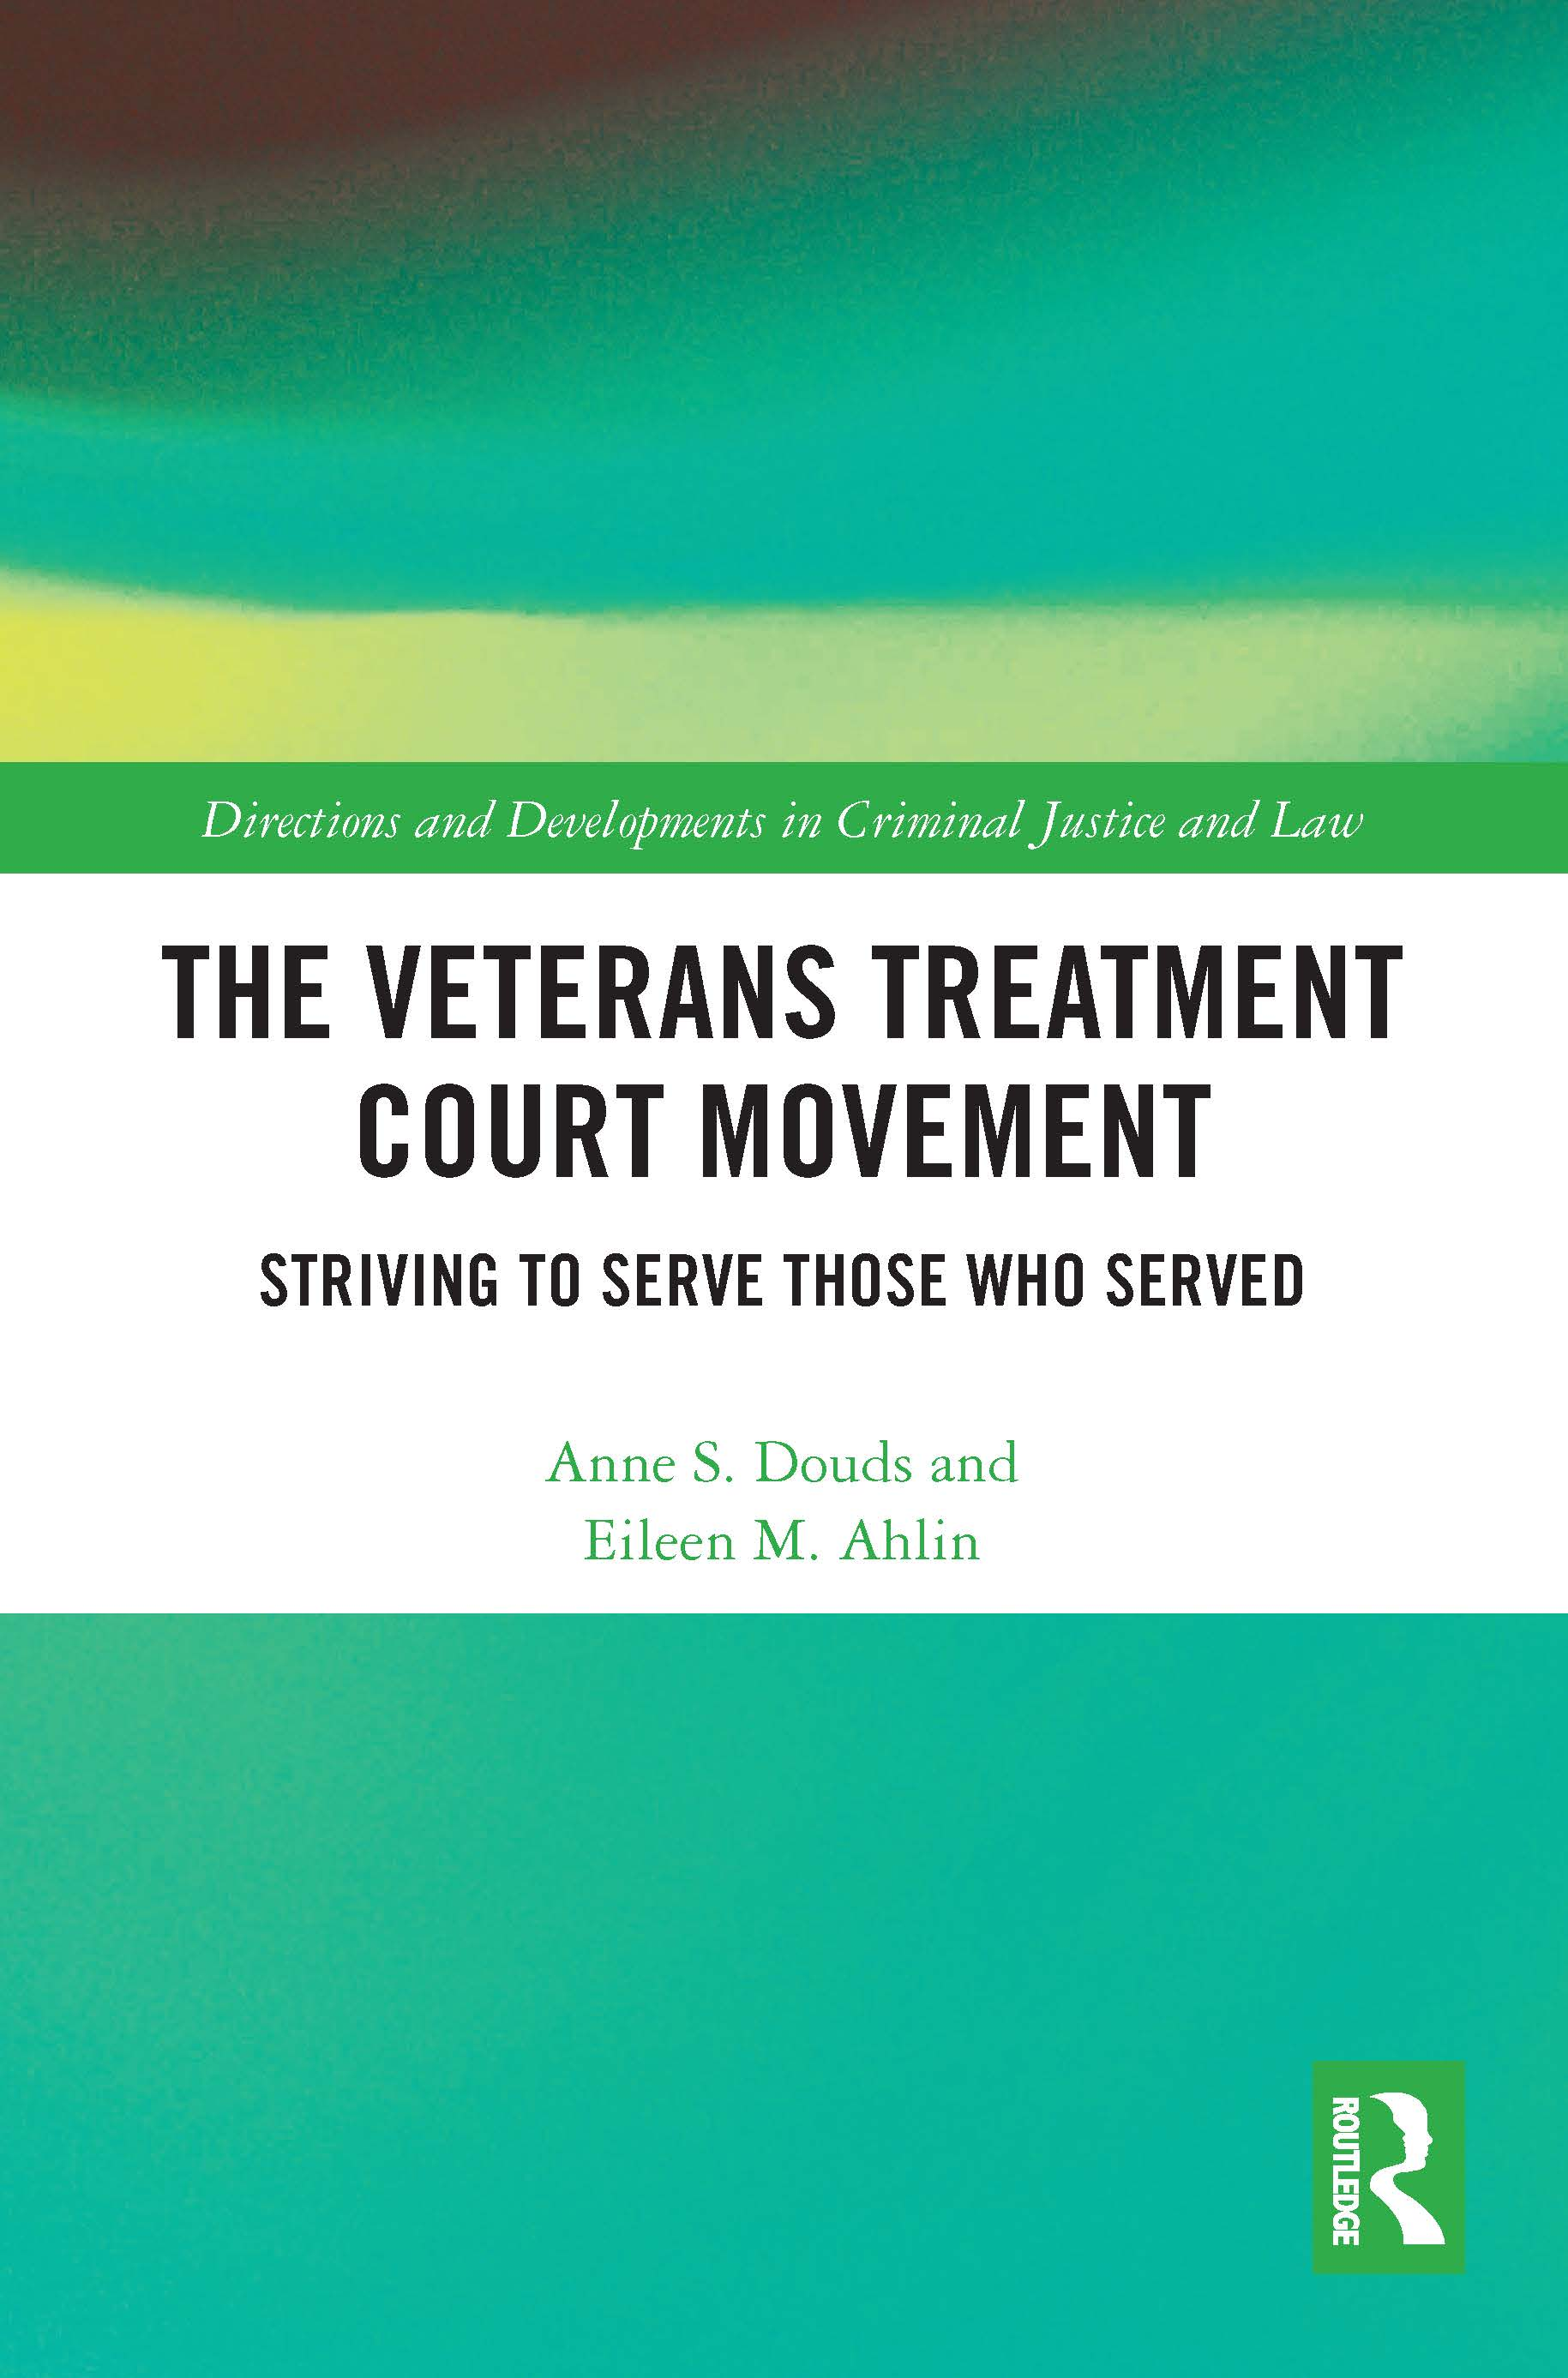 The Veterans Treatment Court Movement: Striving to Serve Those Who Served book cover